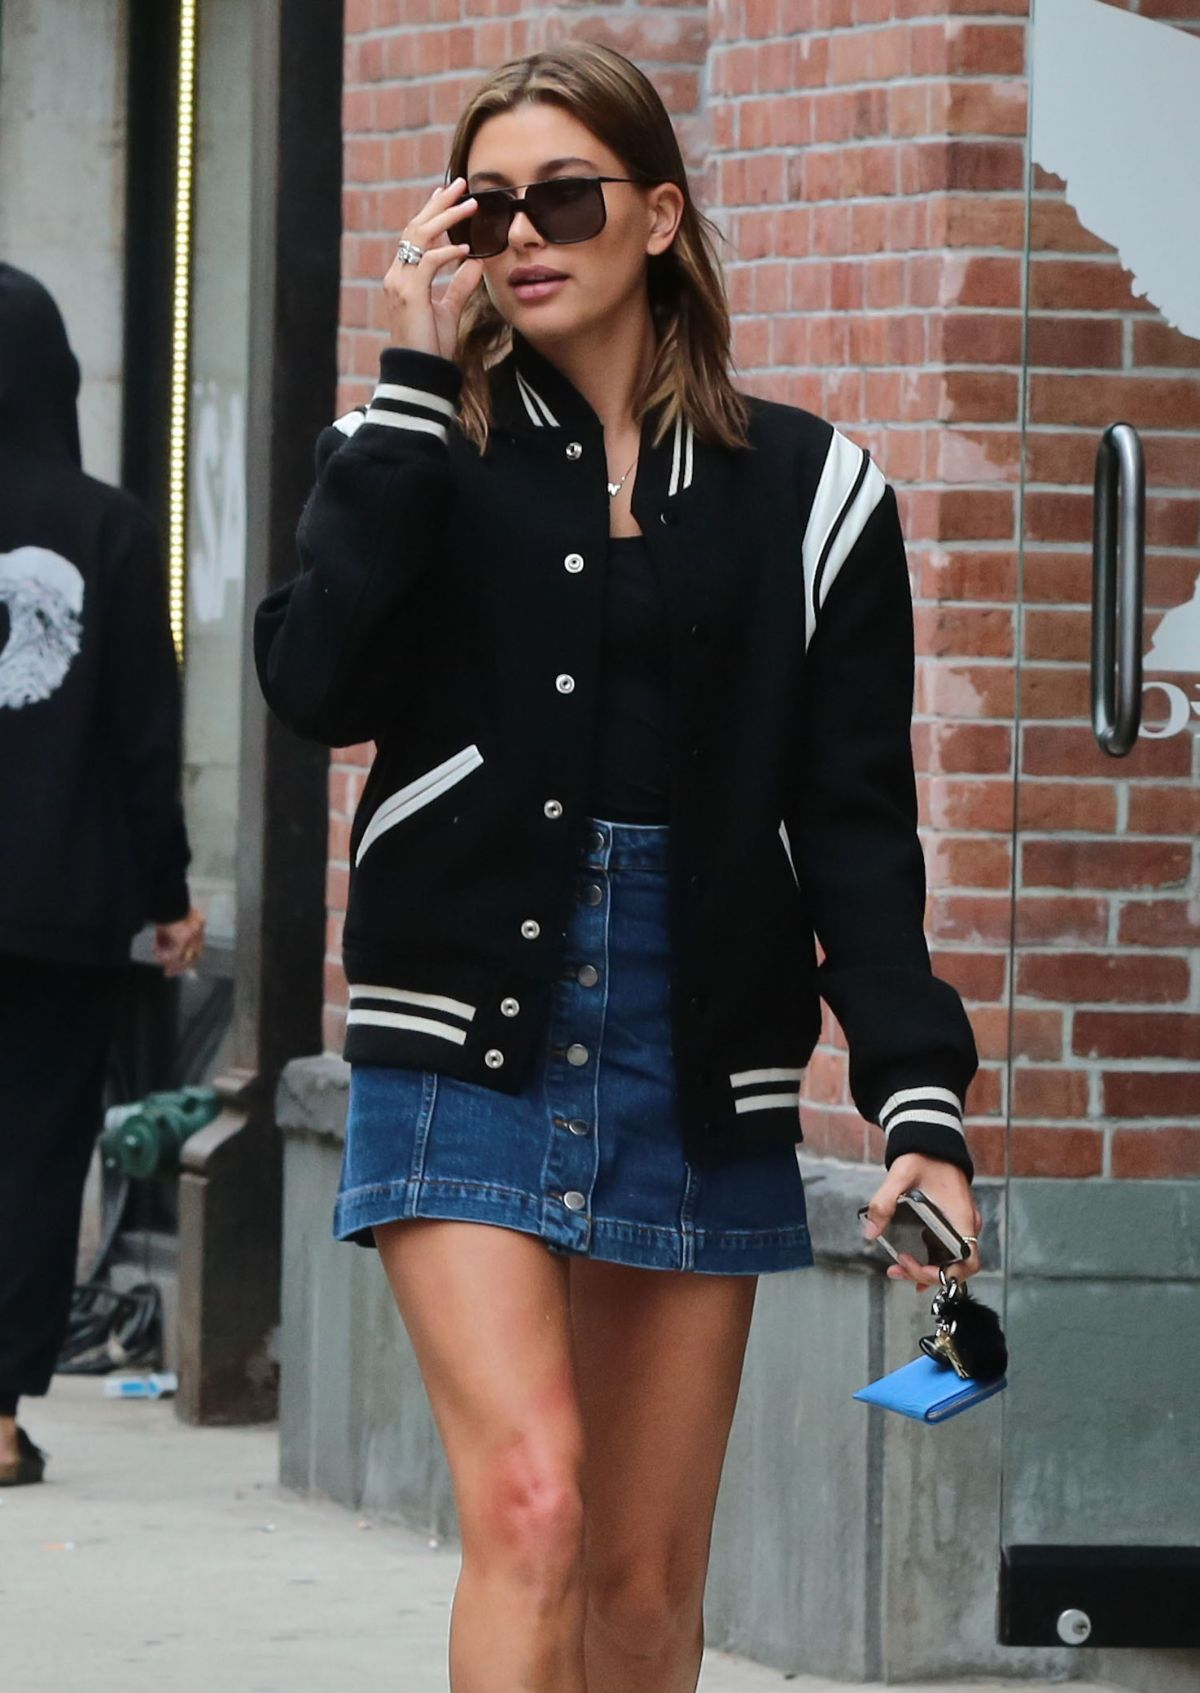 HAILEY BALDWIN in Jeans Skirt Out in New York 06/18/2015